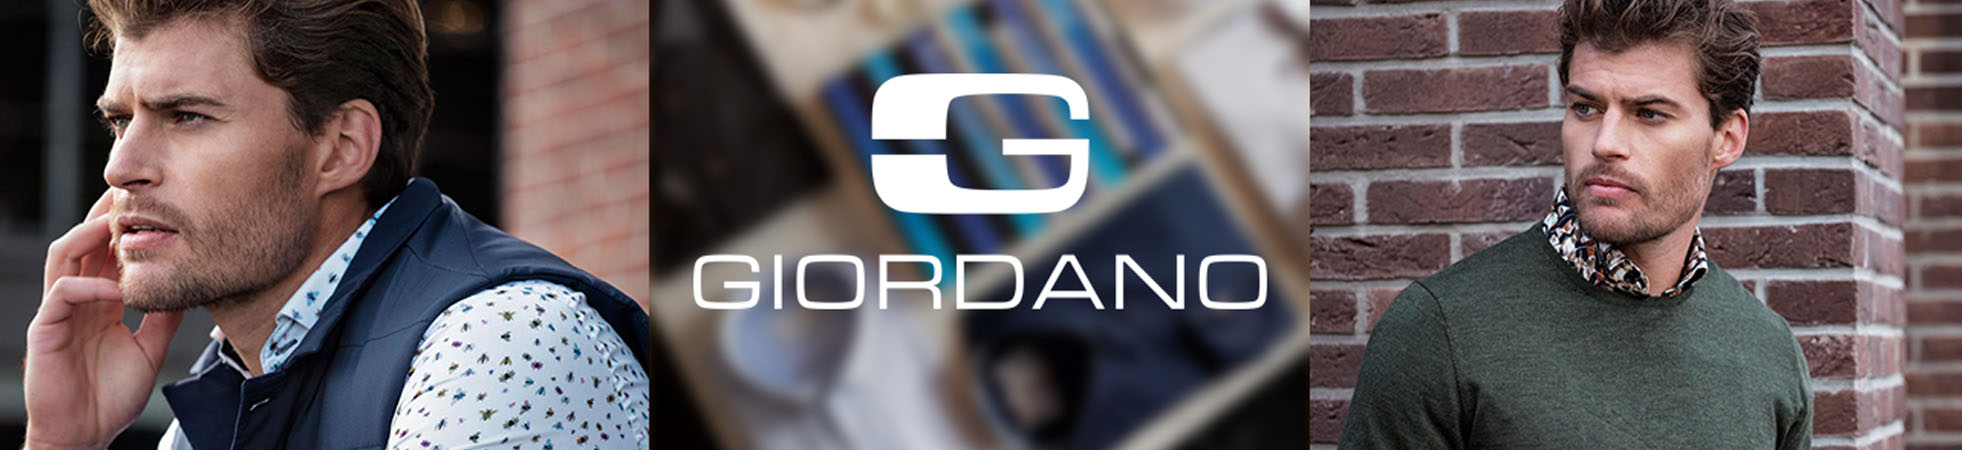 Giordano Dress Shirts